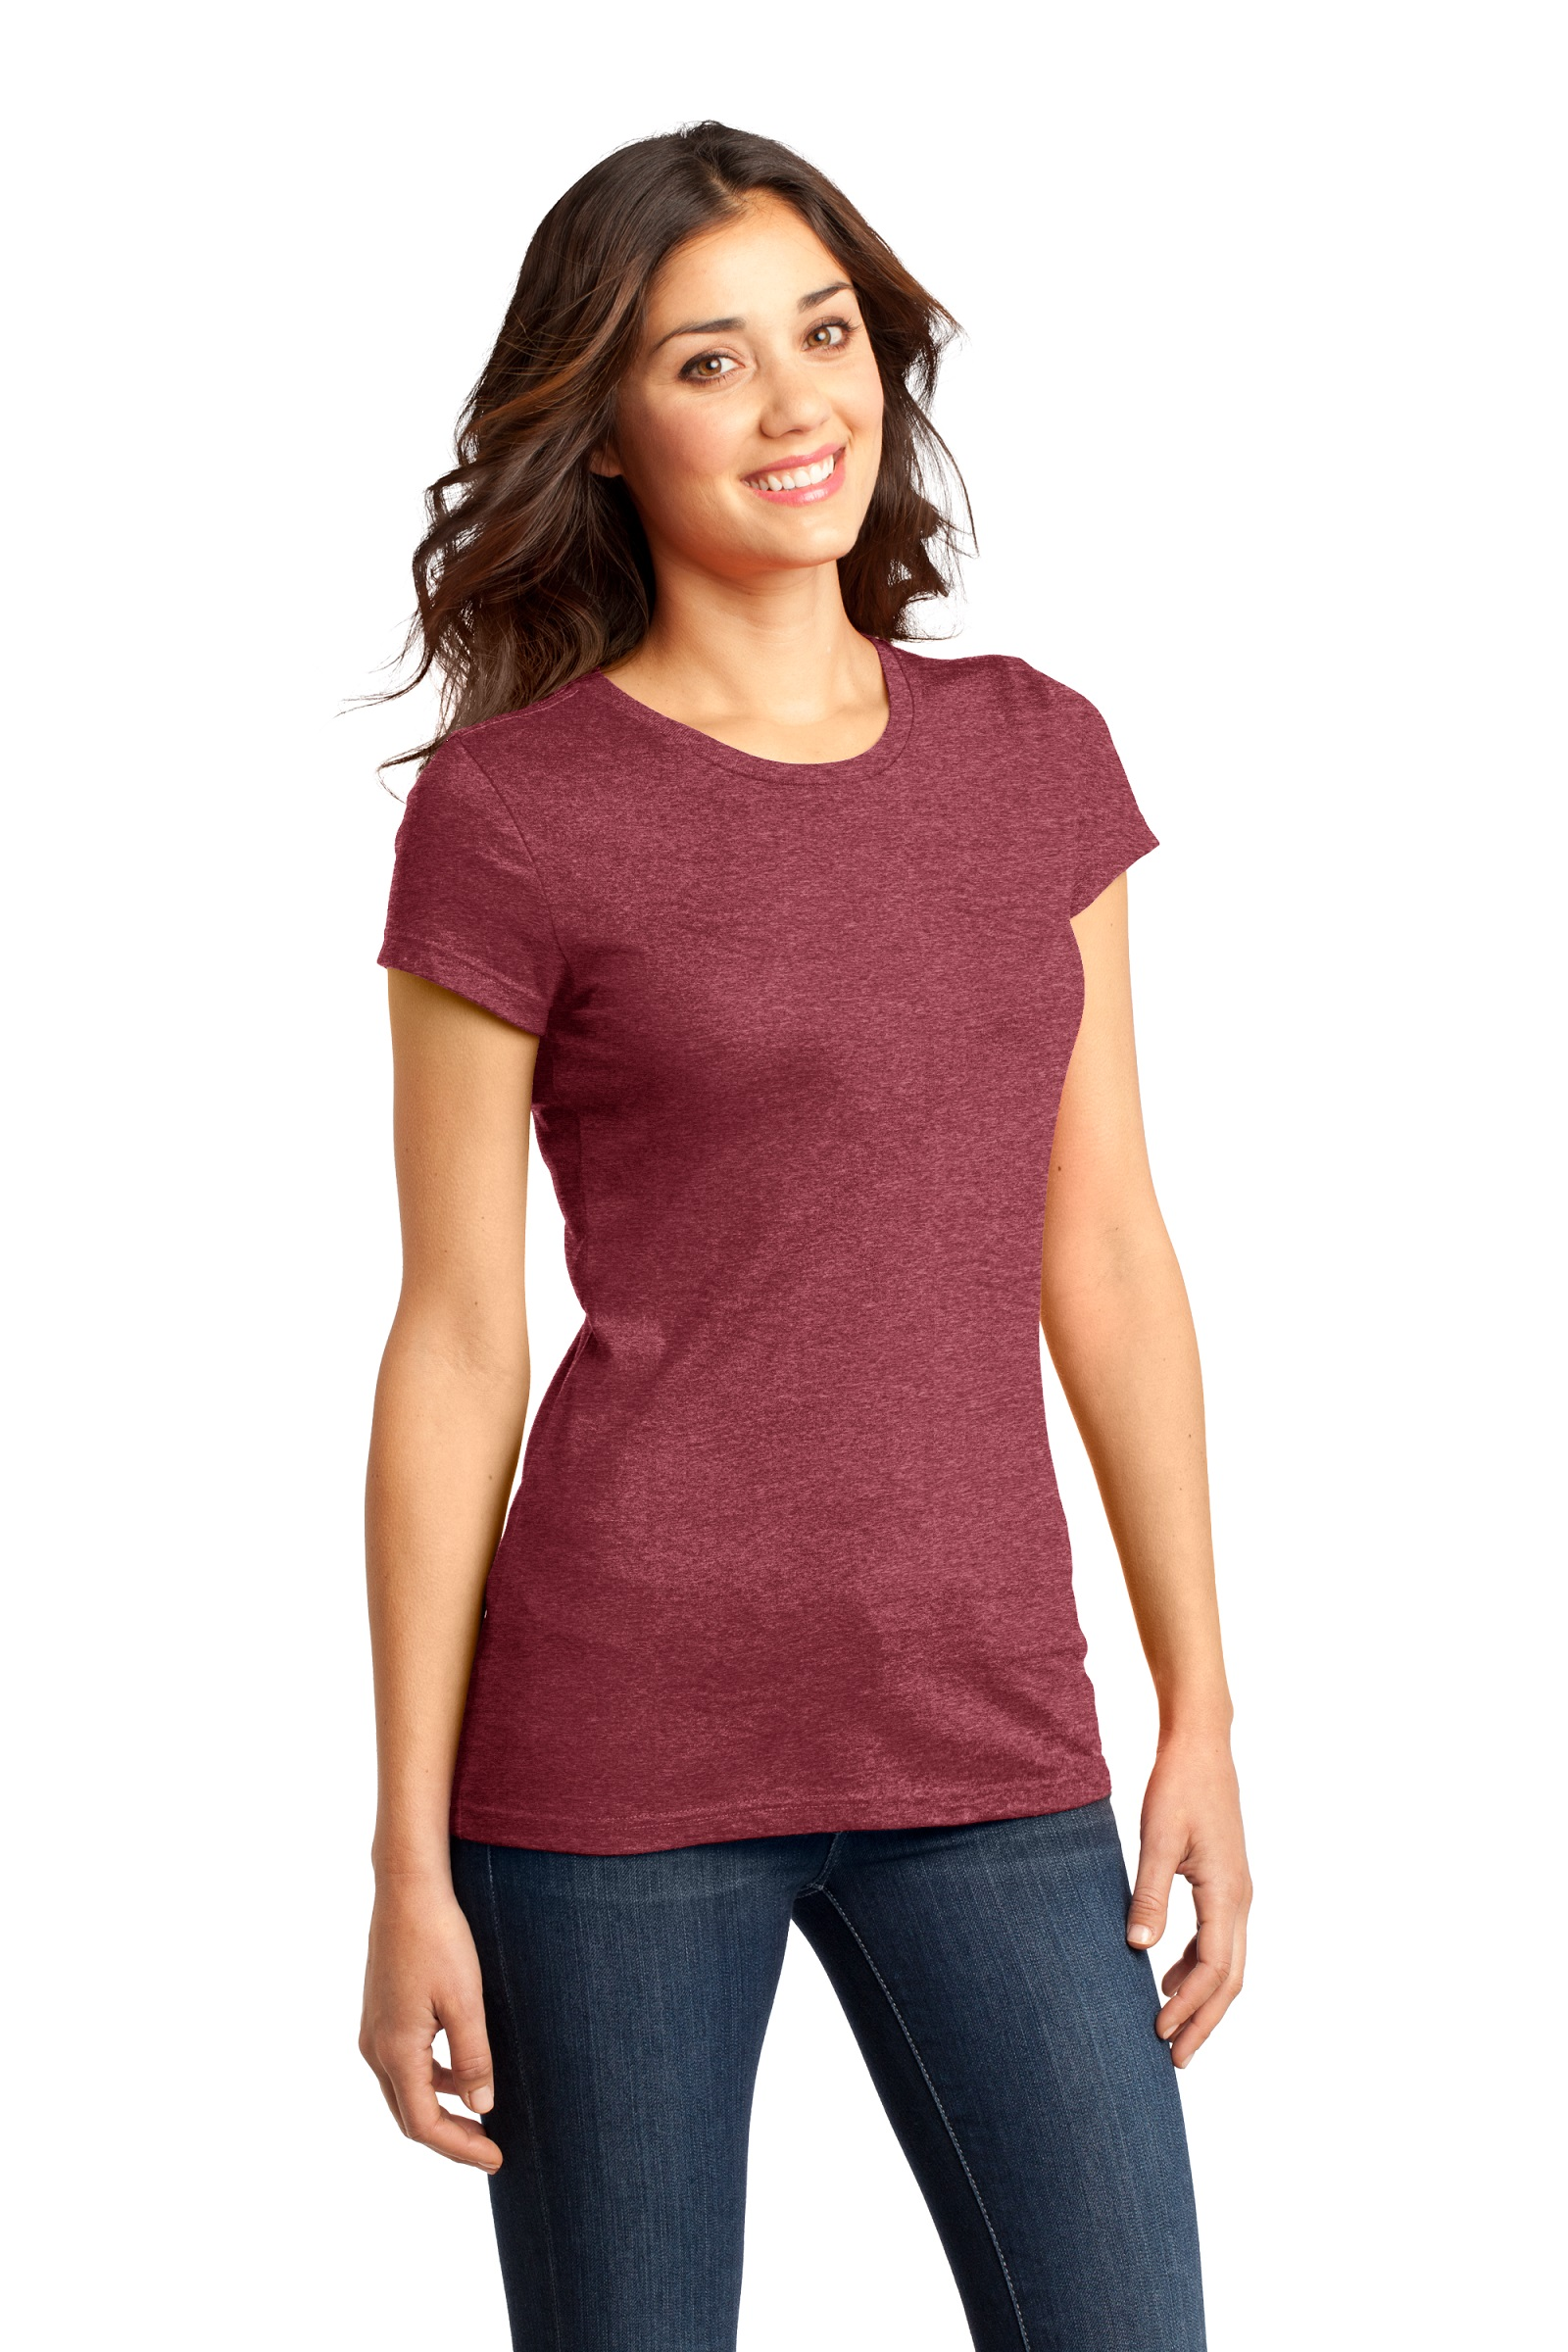 District Printed Women's Fitted Very Important Tee